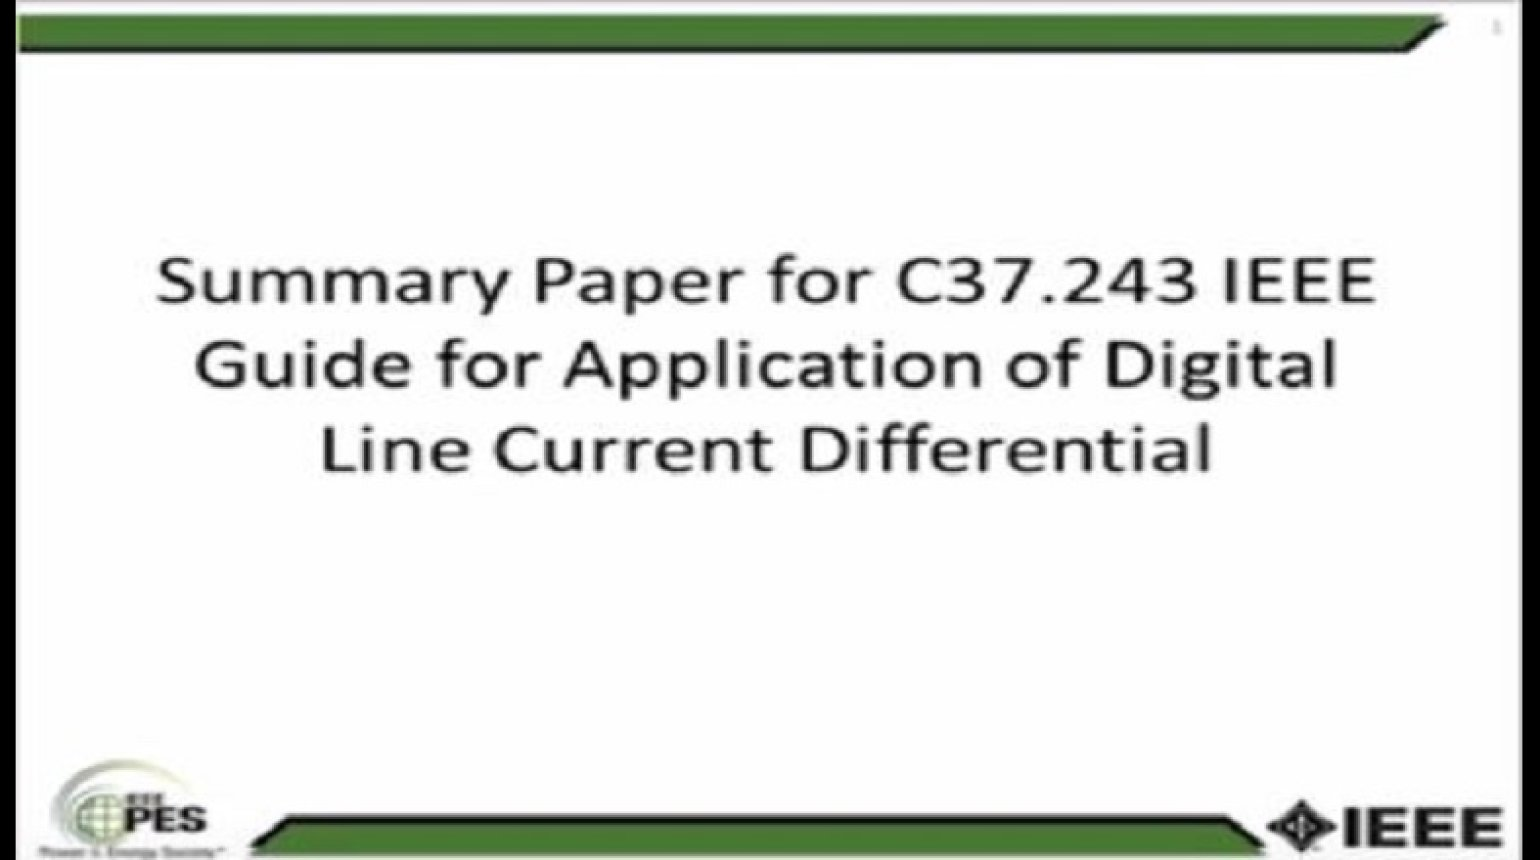 Summary Paper for C37.243 IEEE Guide for Application of Digital Line Current Differential Relays Using Digital Communication